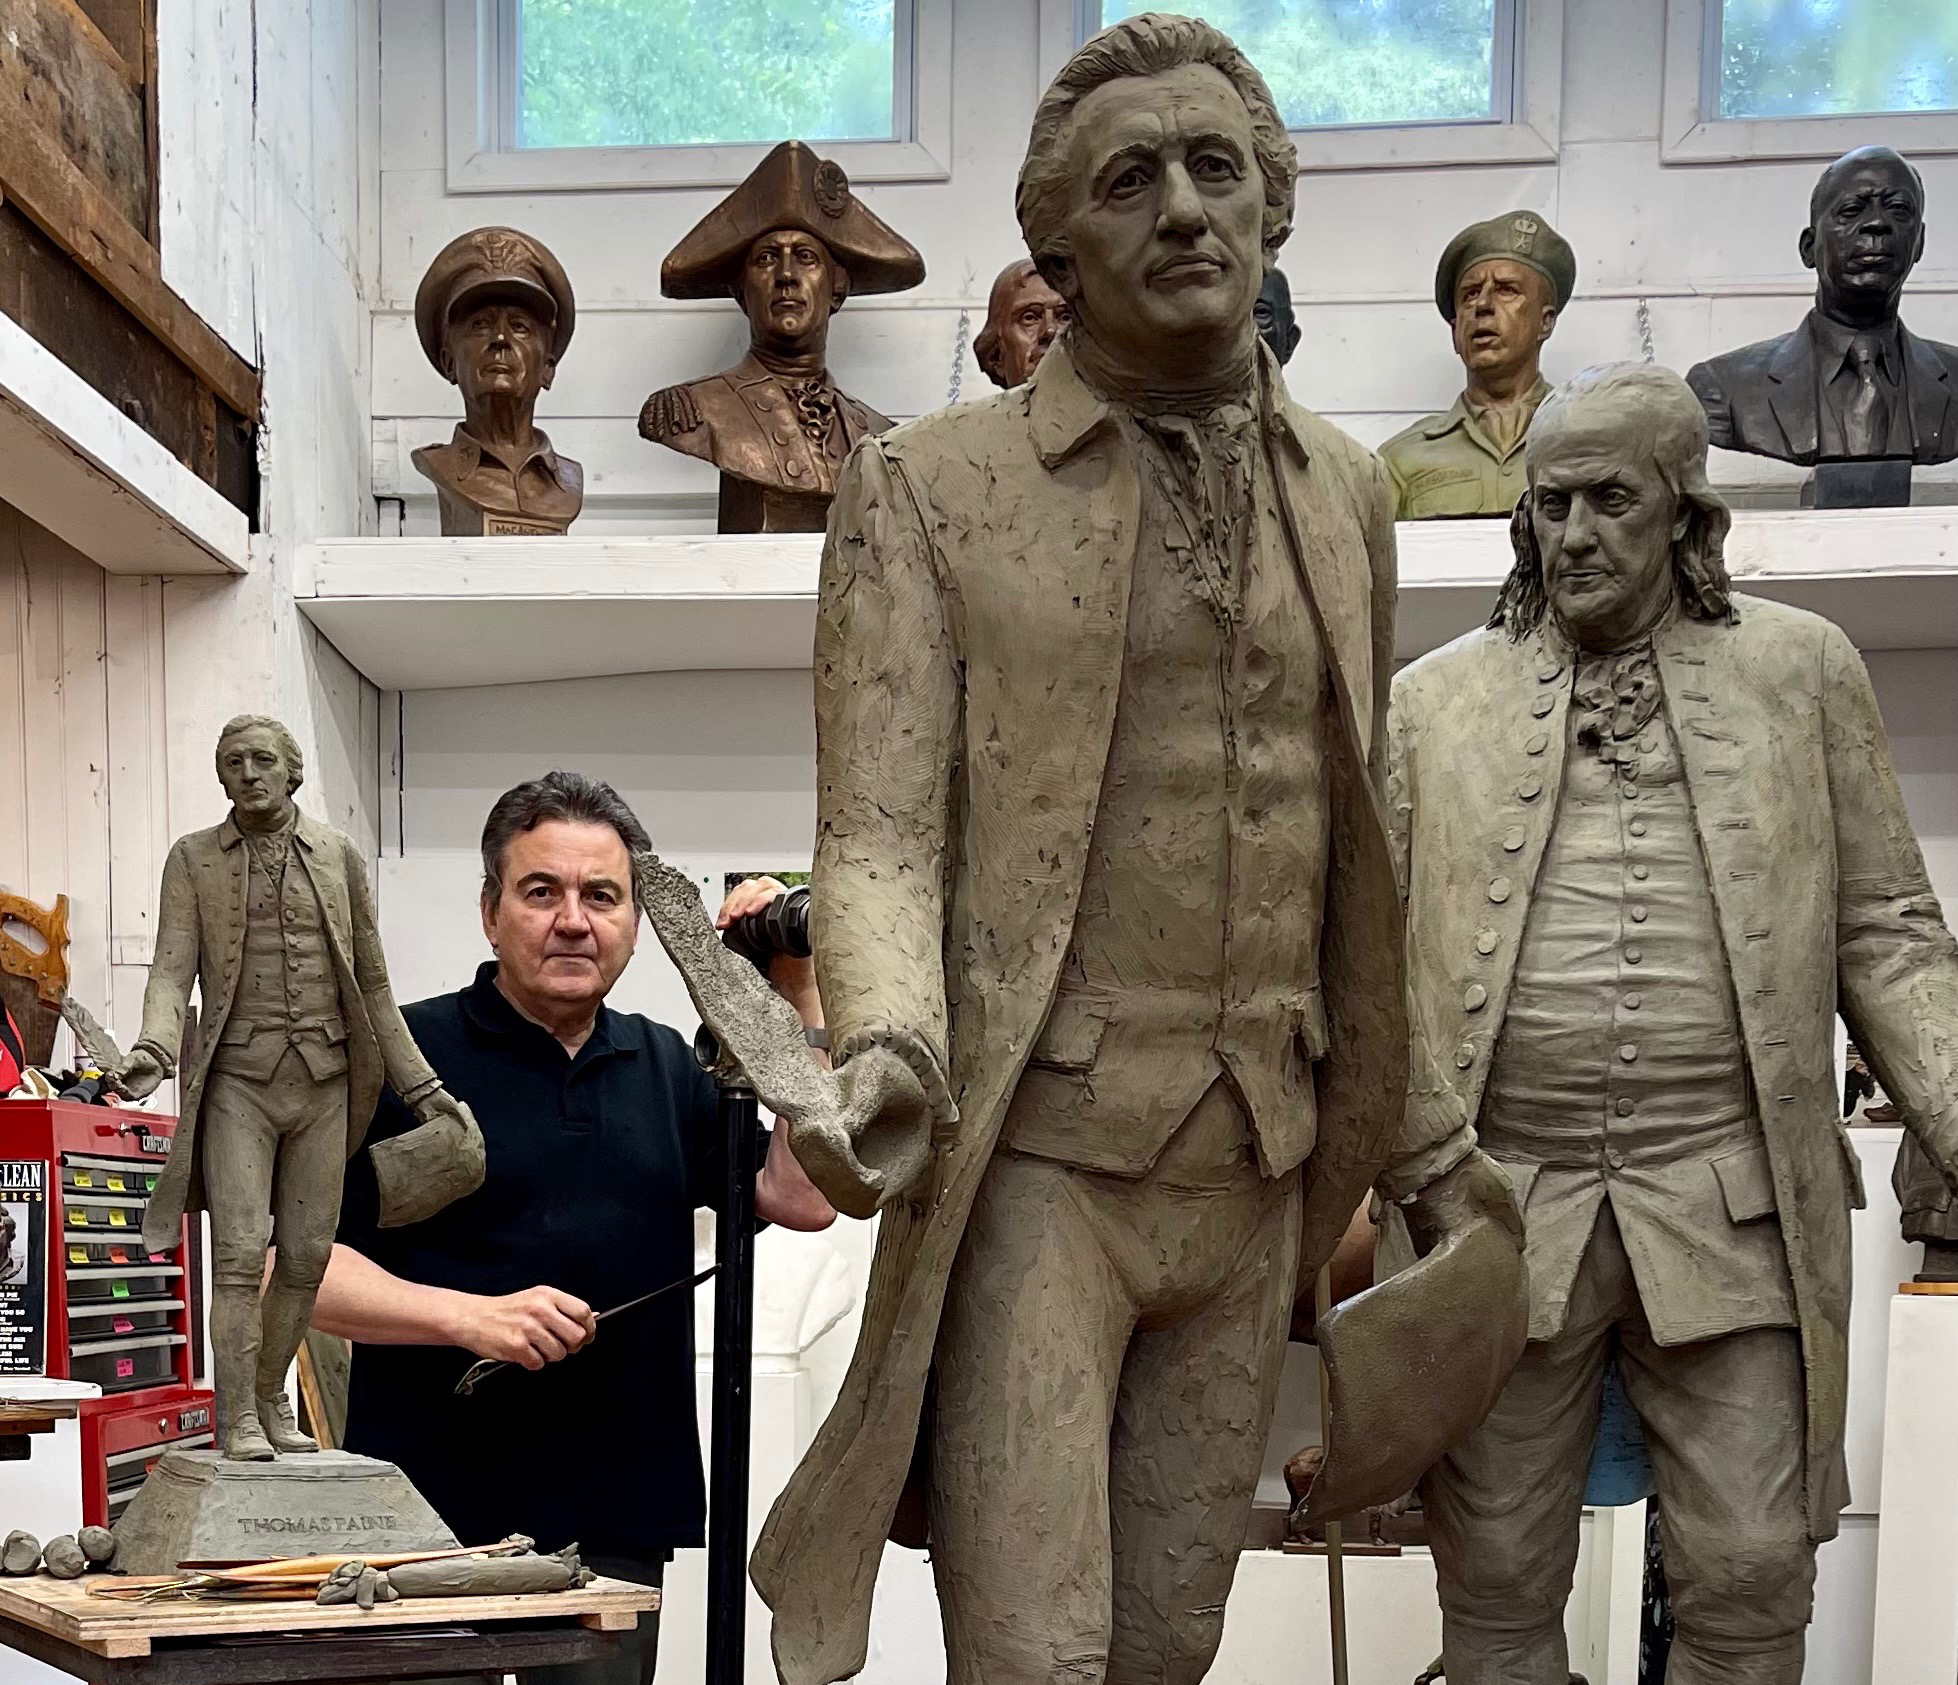 It's time for the nation Thomas Paine helped create to honor his legacy.